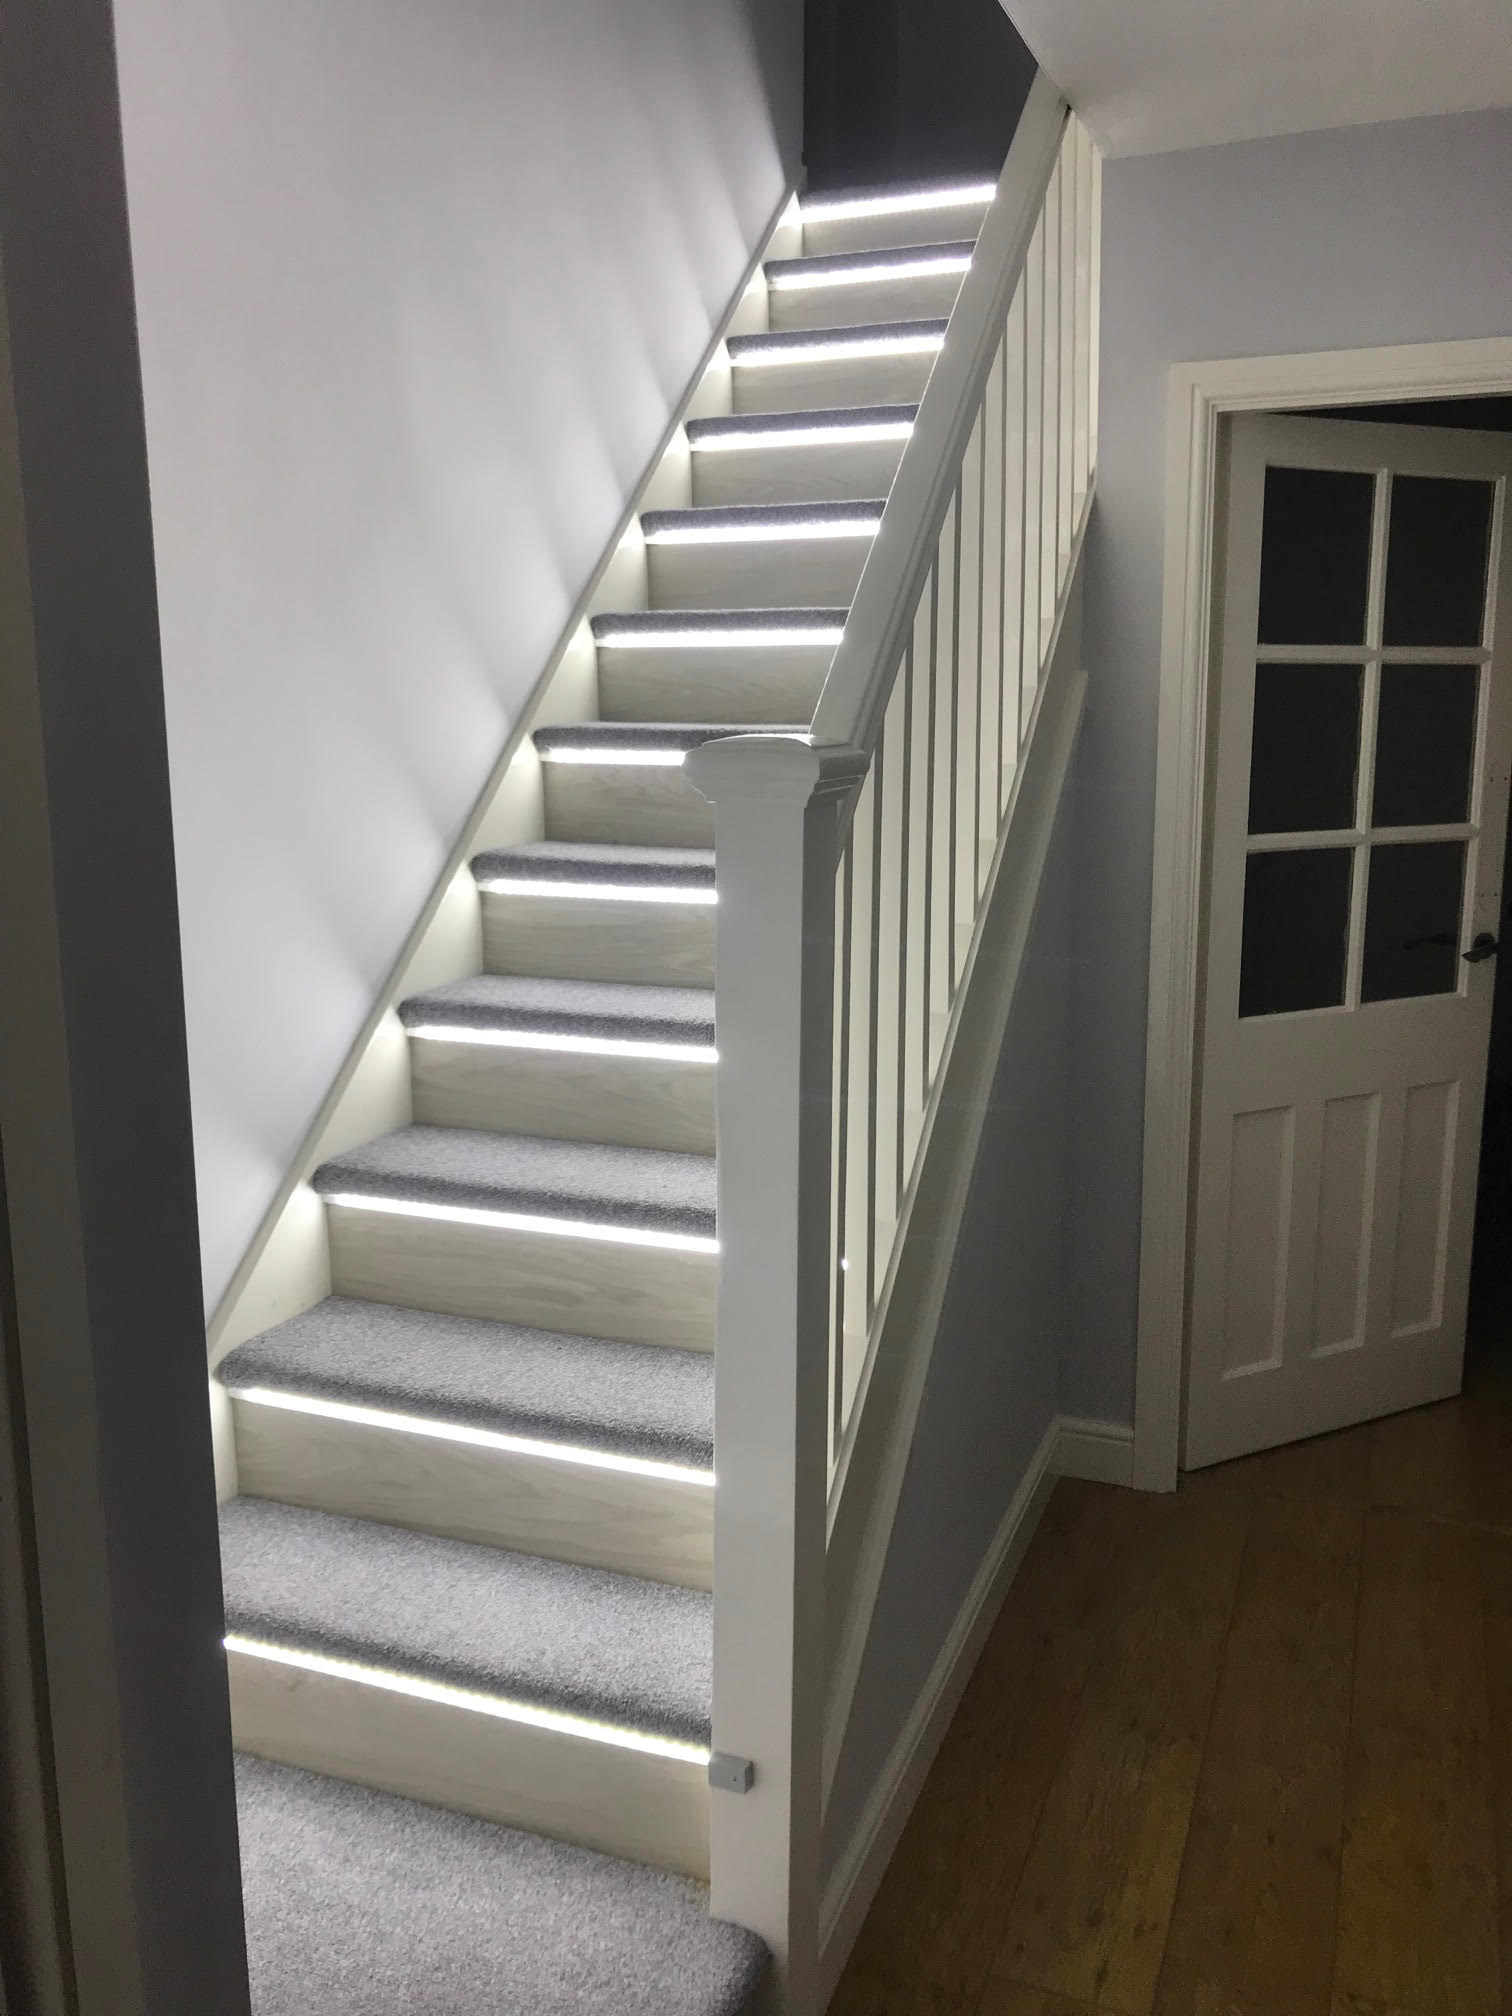 Automatic-stair-lights-white-lights.jpg